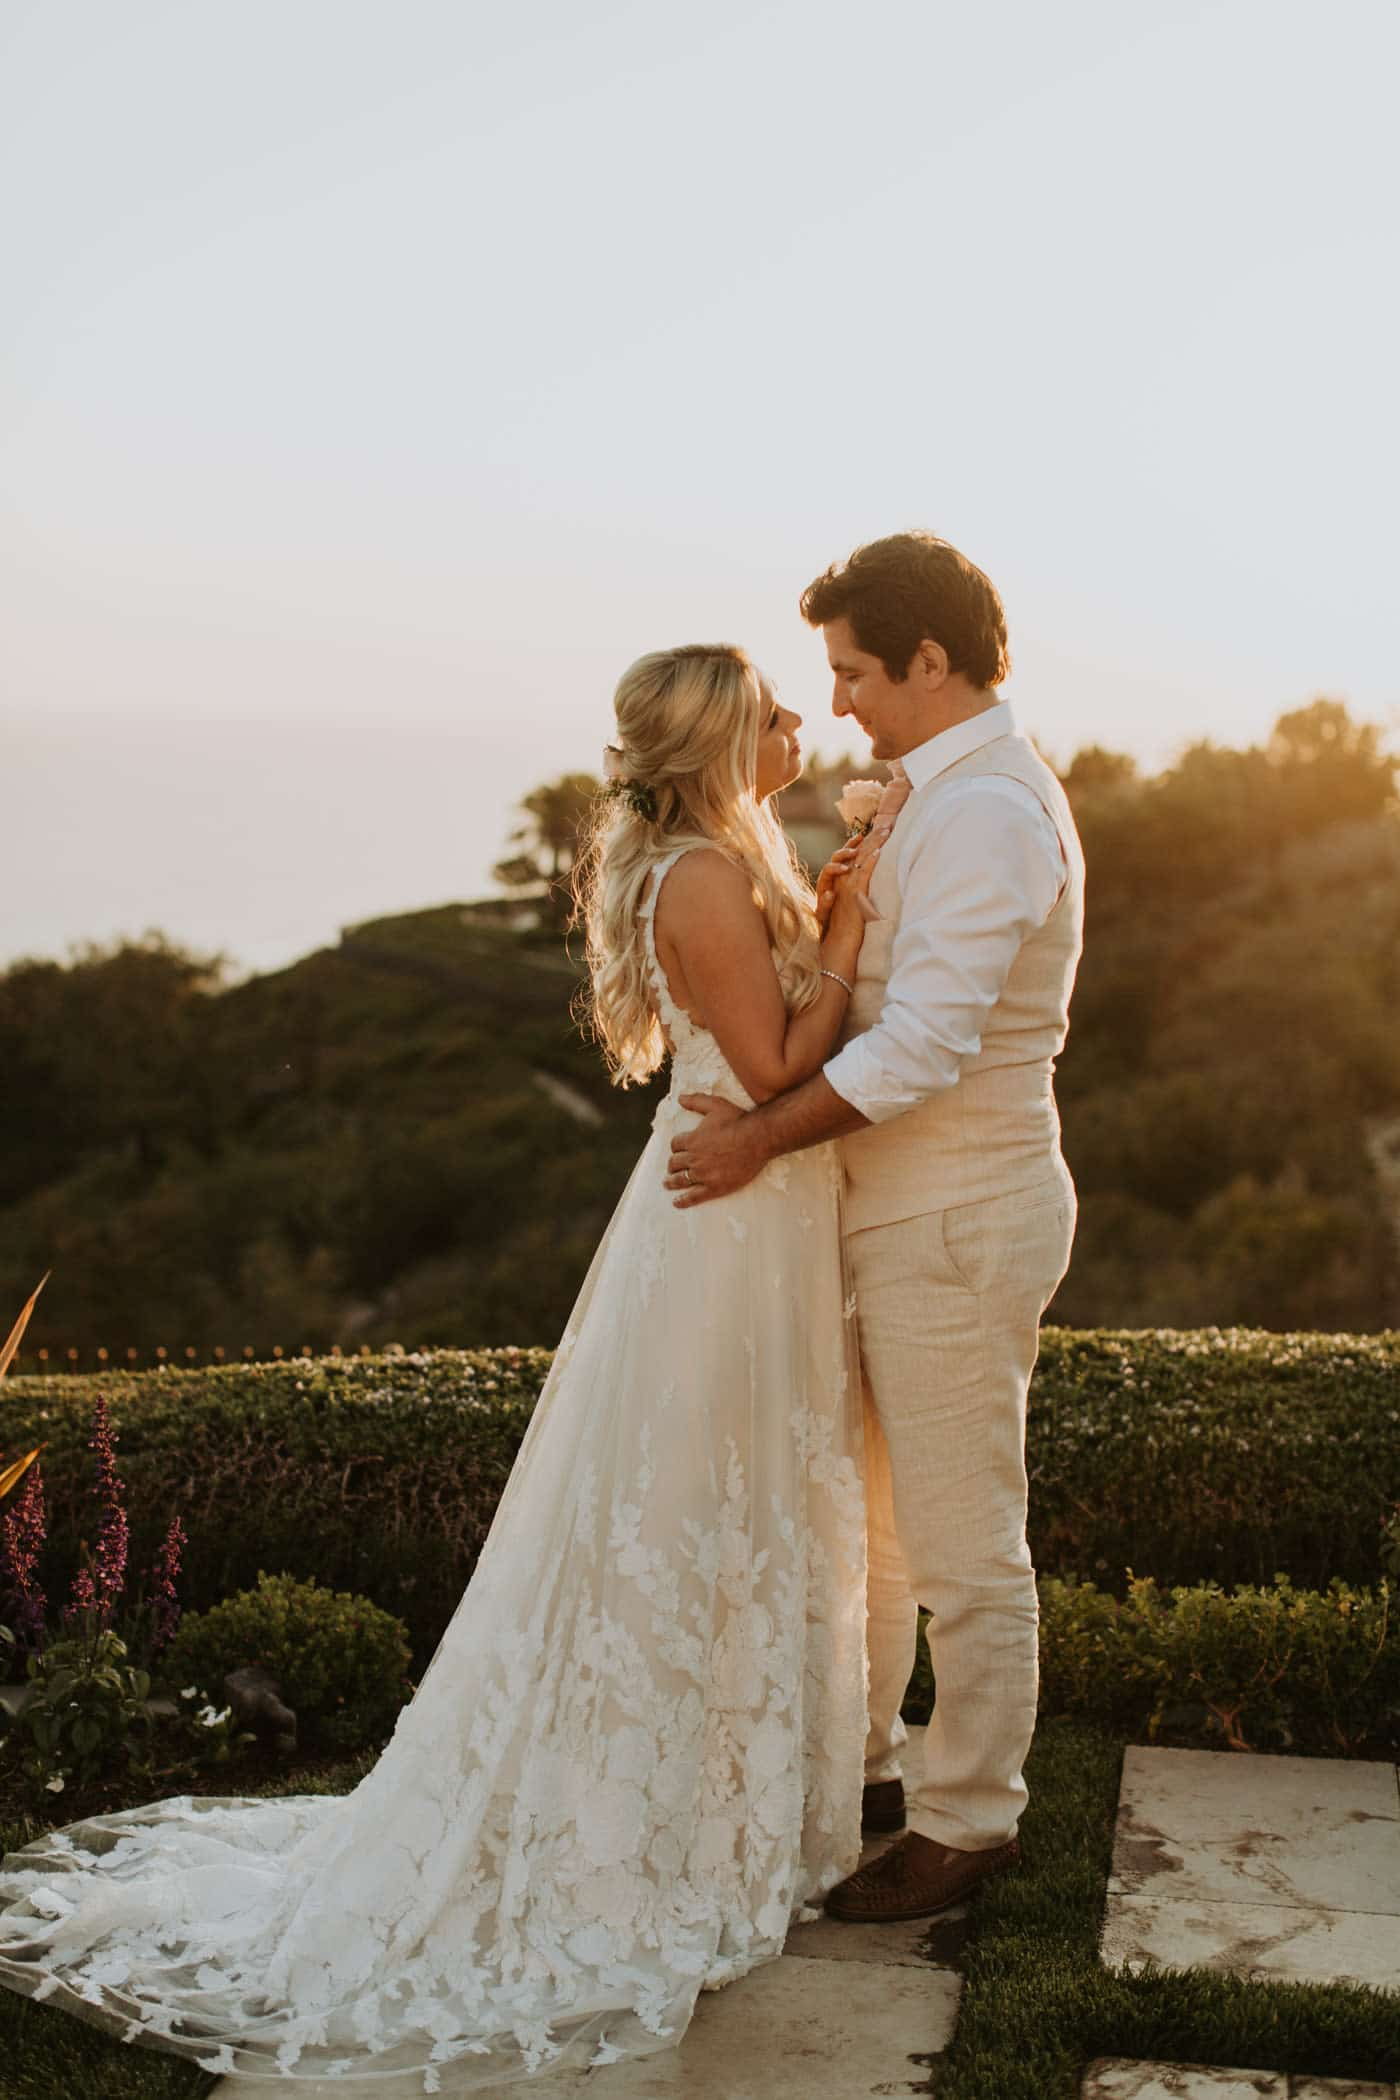 Real Weddings | Vinka Design | Real Brides Wearing Vinka Gowns | Camille and Aaron kissing in the California sun with the dress train lace detail shining